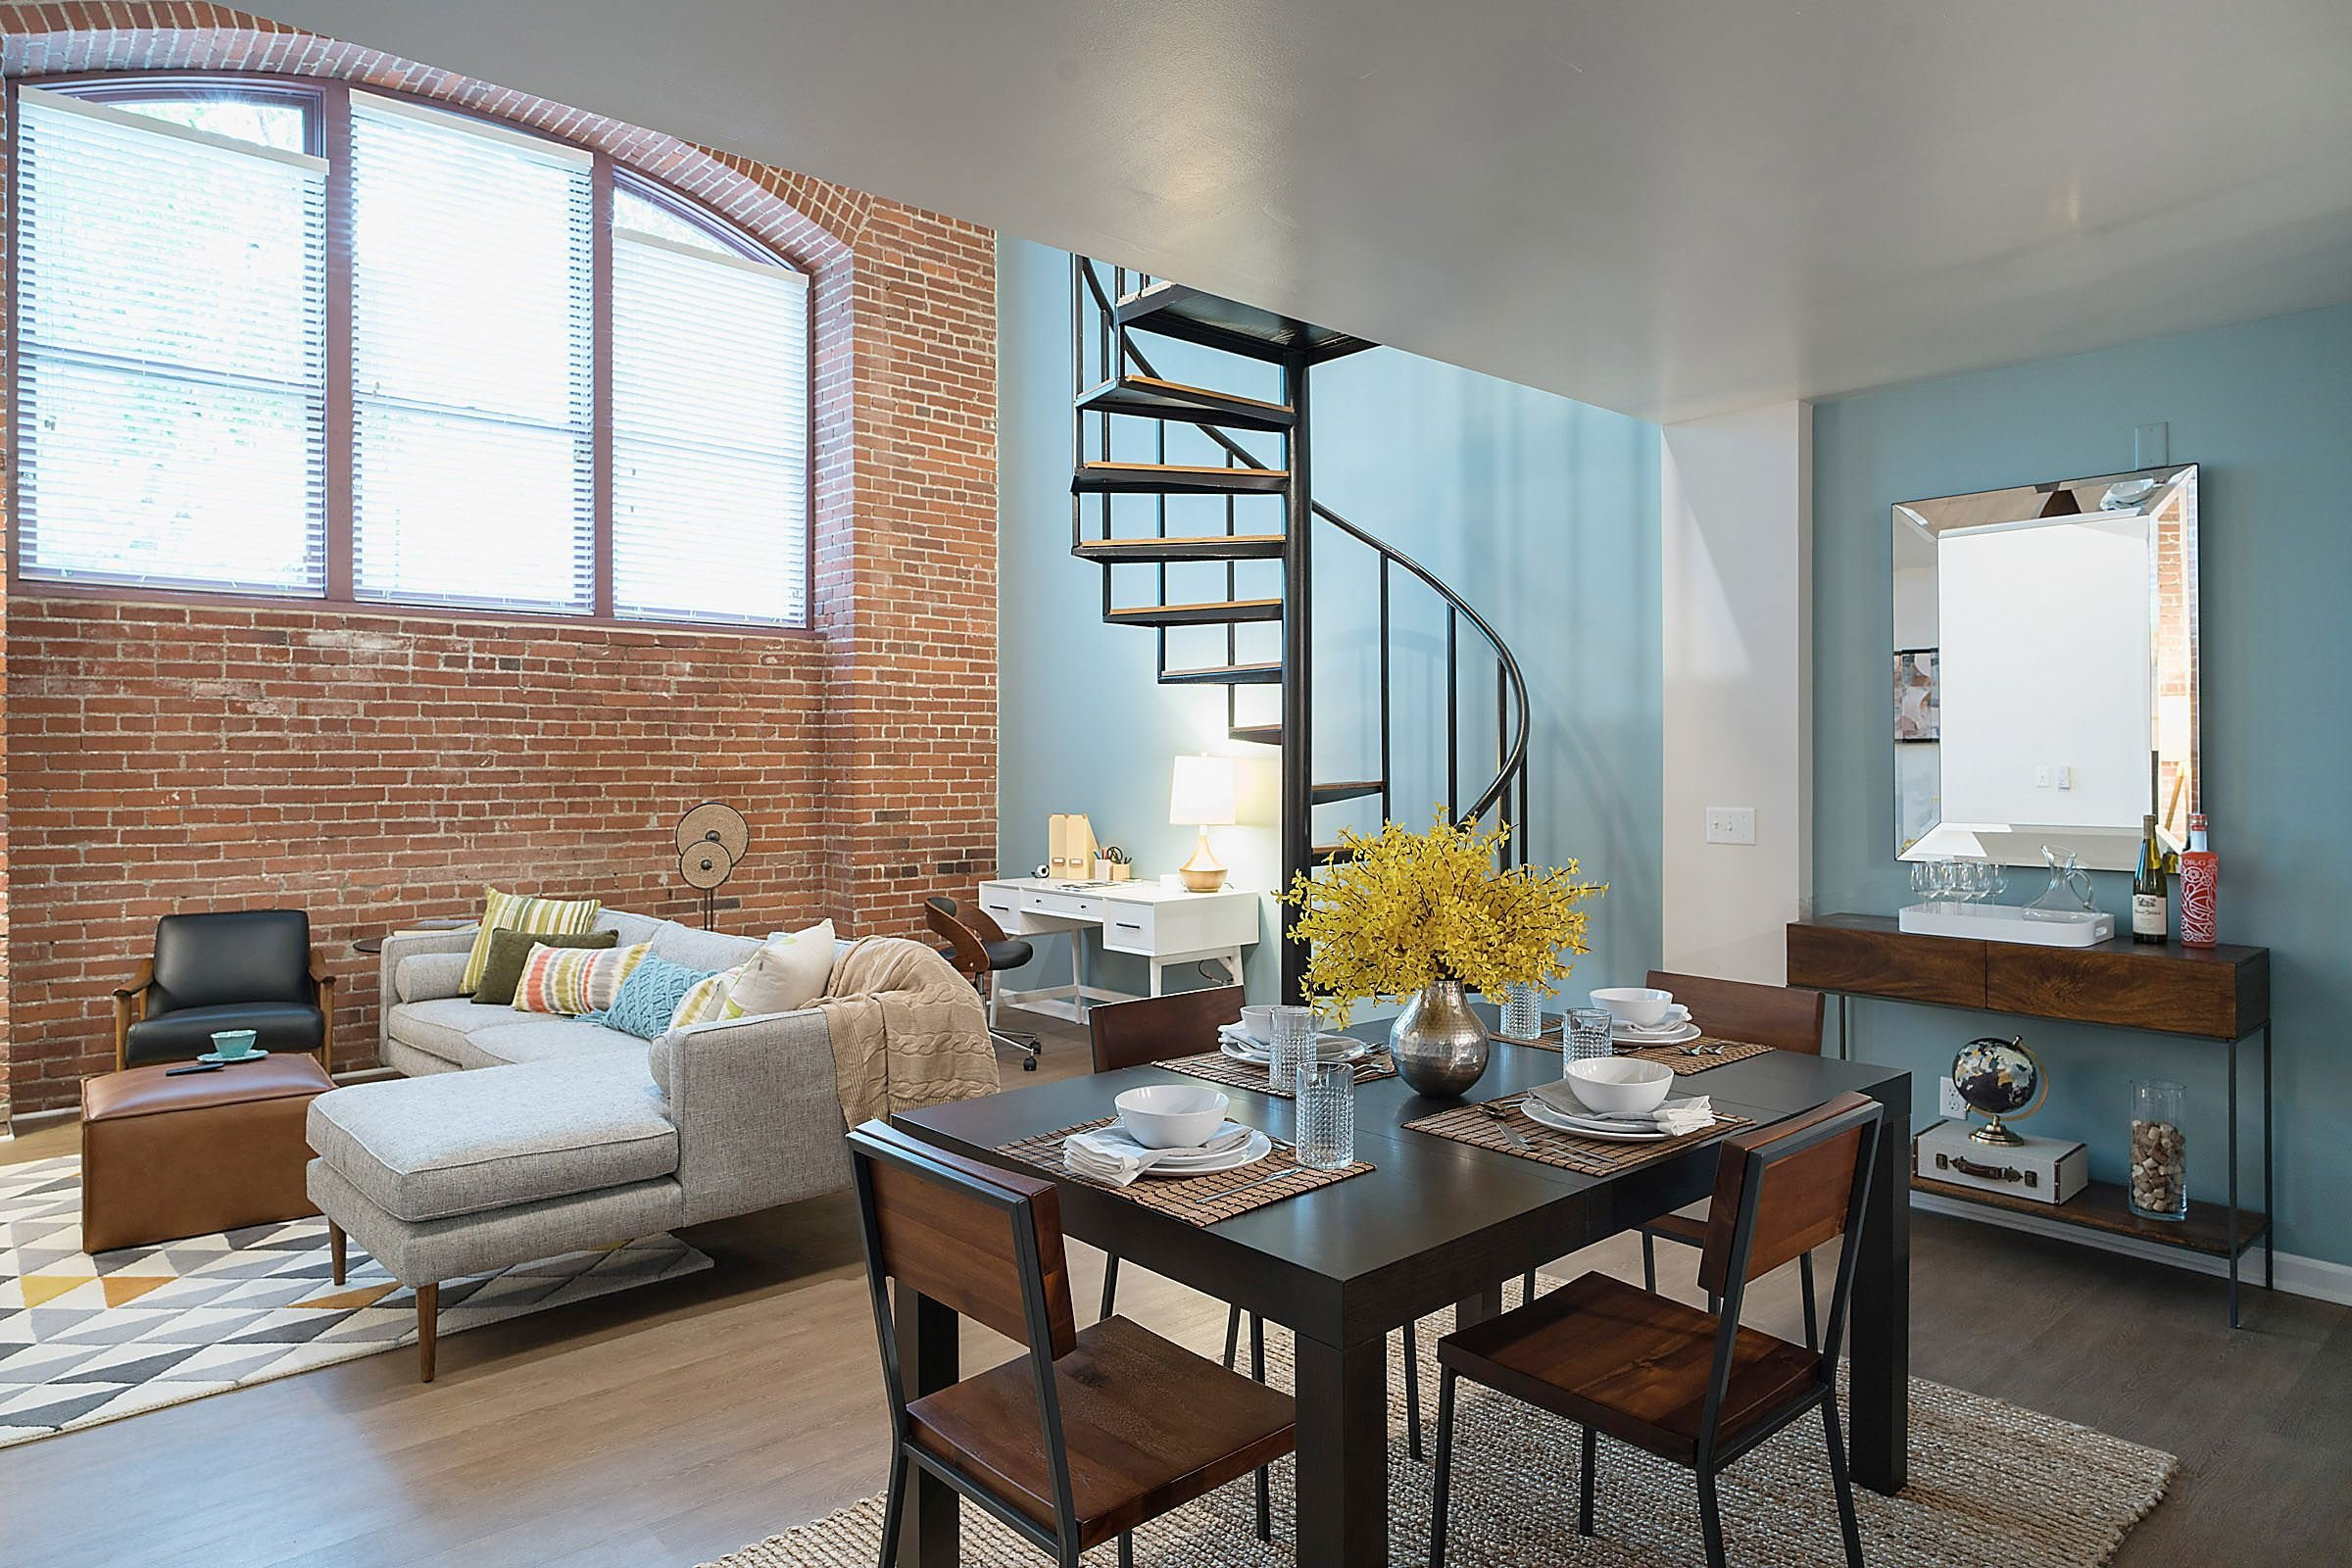 Best Lofty Living In Shadyside Commons Open House Pittsburgh With Pictures